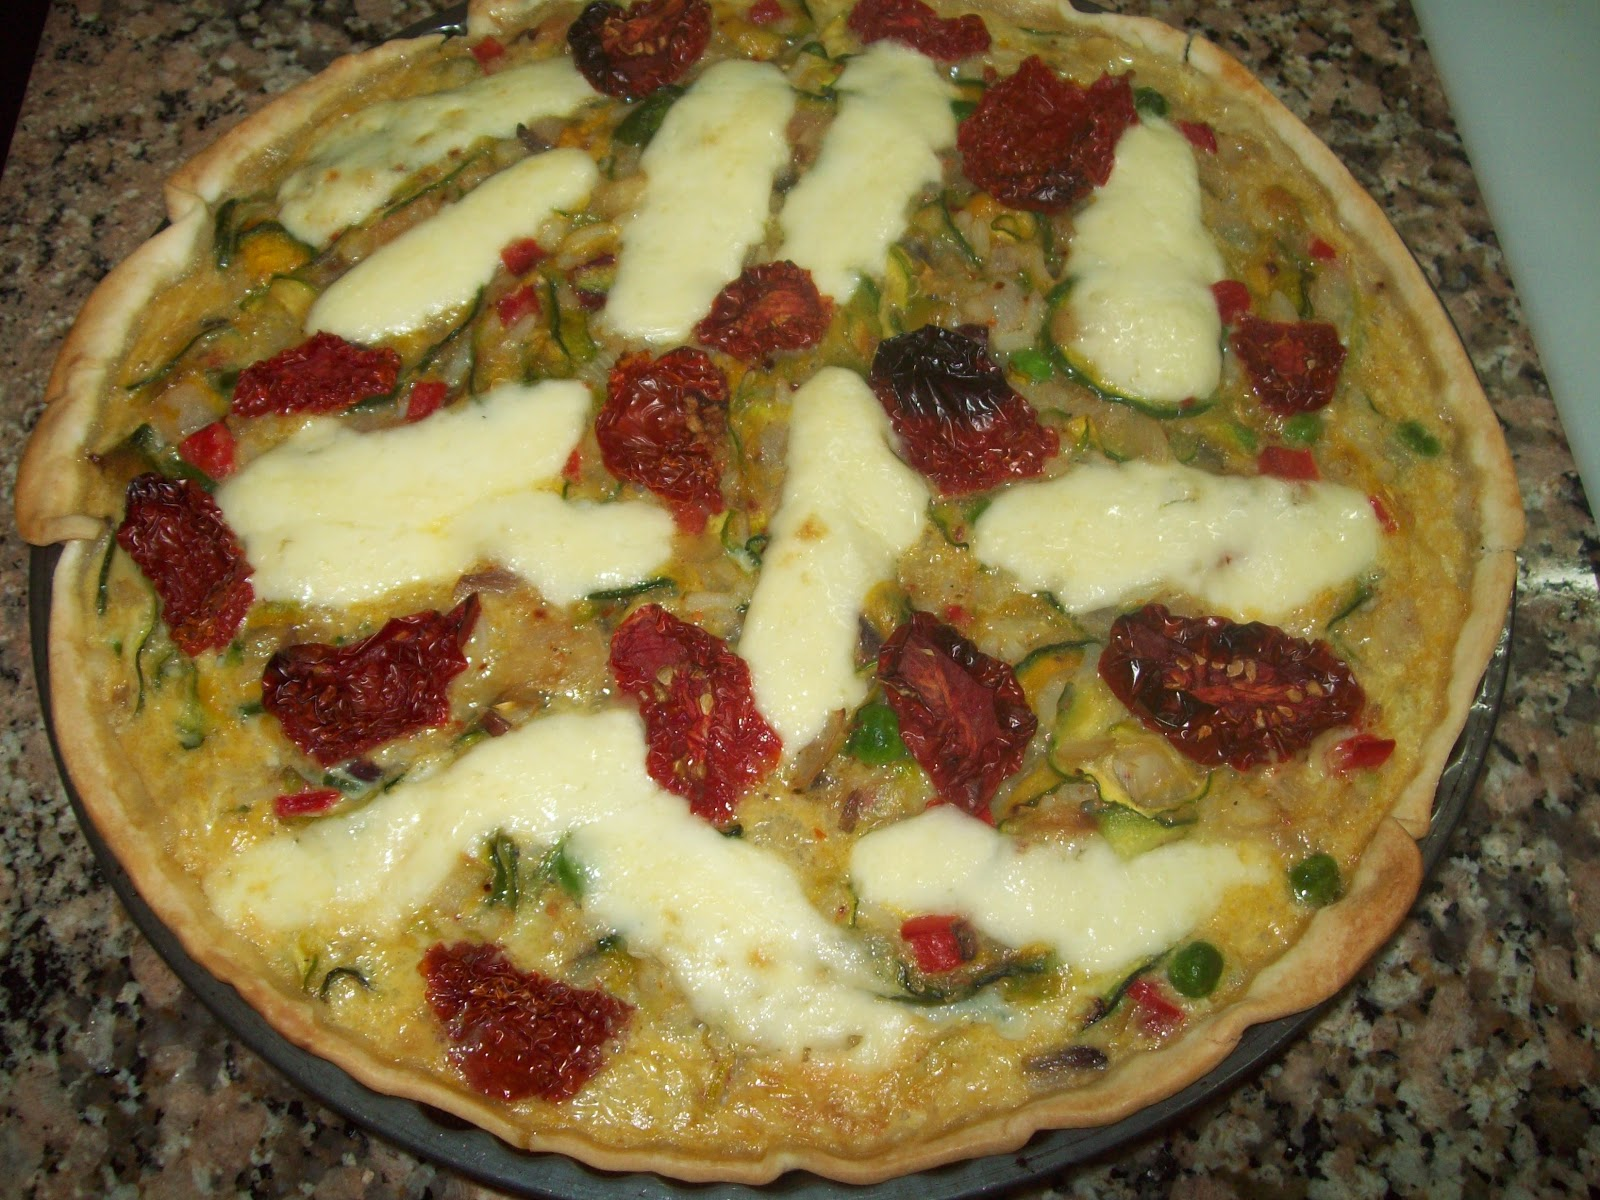 Tarta de zapallitos tomates secos arroz y arvejas for Ideas de comidas rapidas y faciles